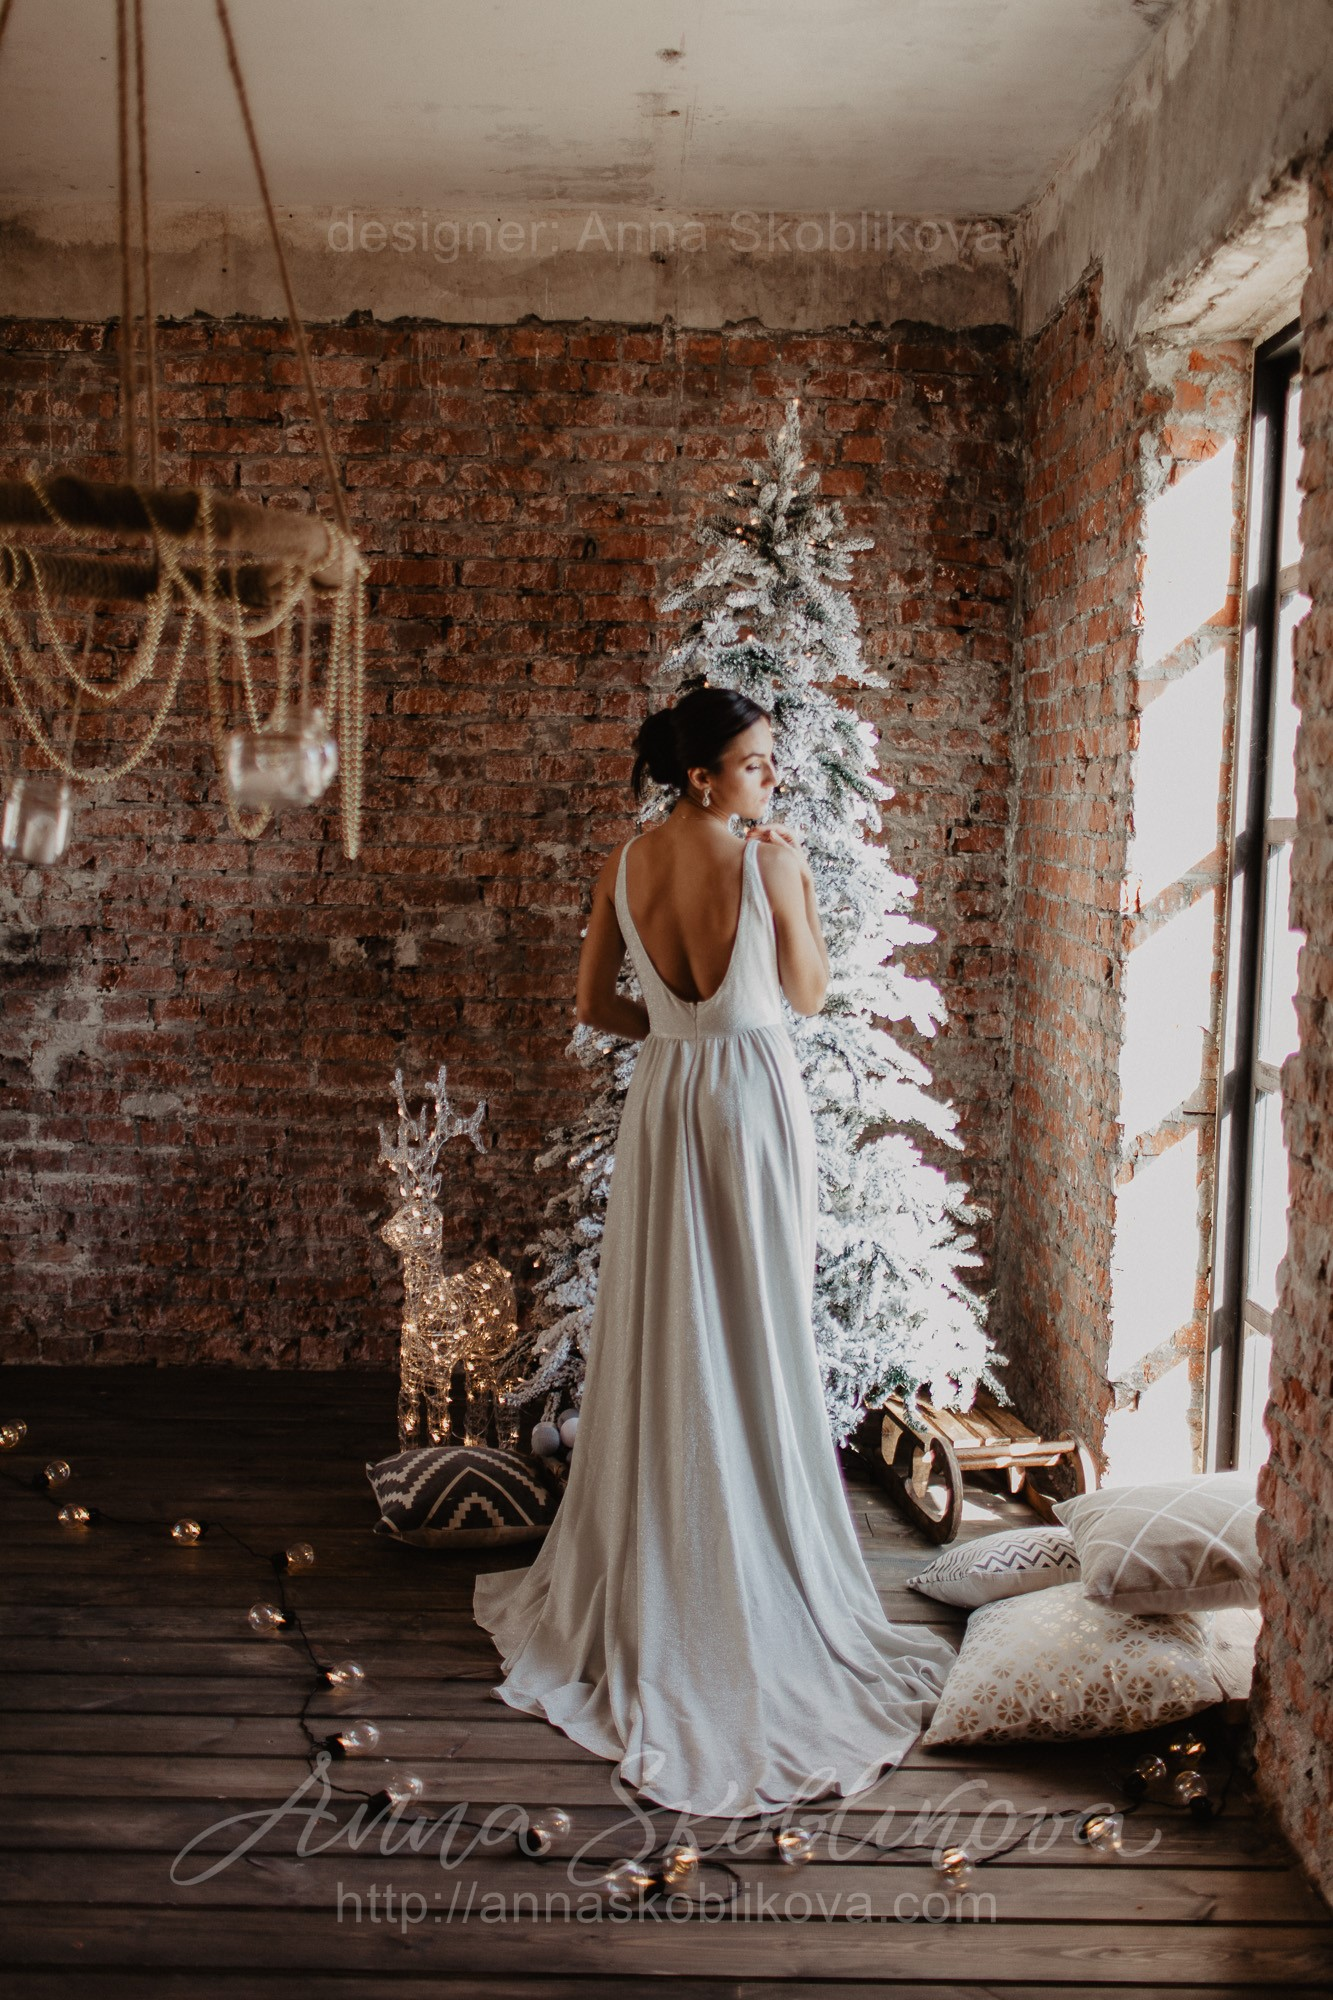 Sylvie - This shimmering chic jersey wedding dress is so shiny and luxurious \\ Anna Skoblikova